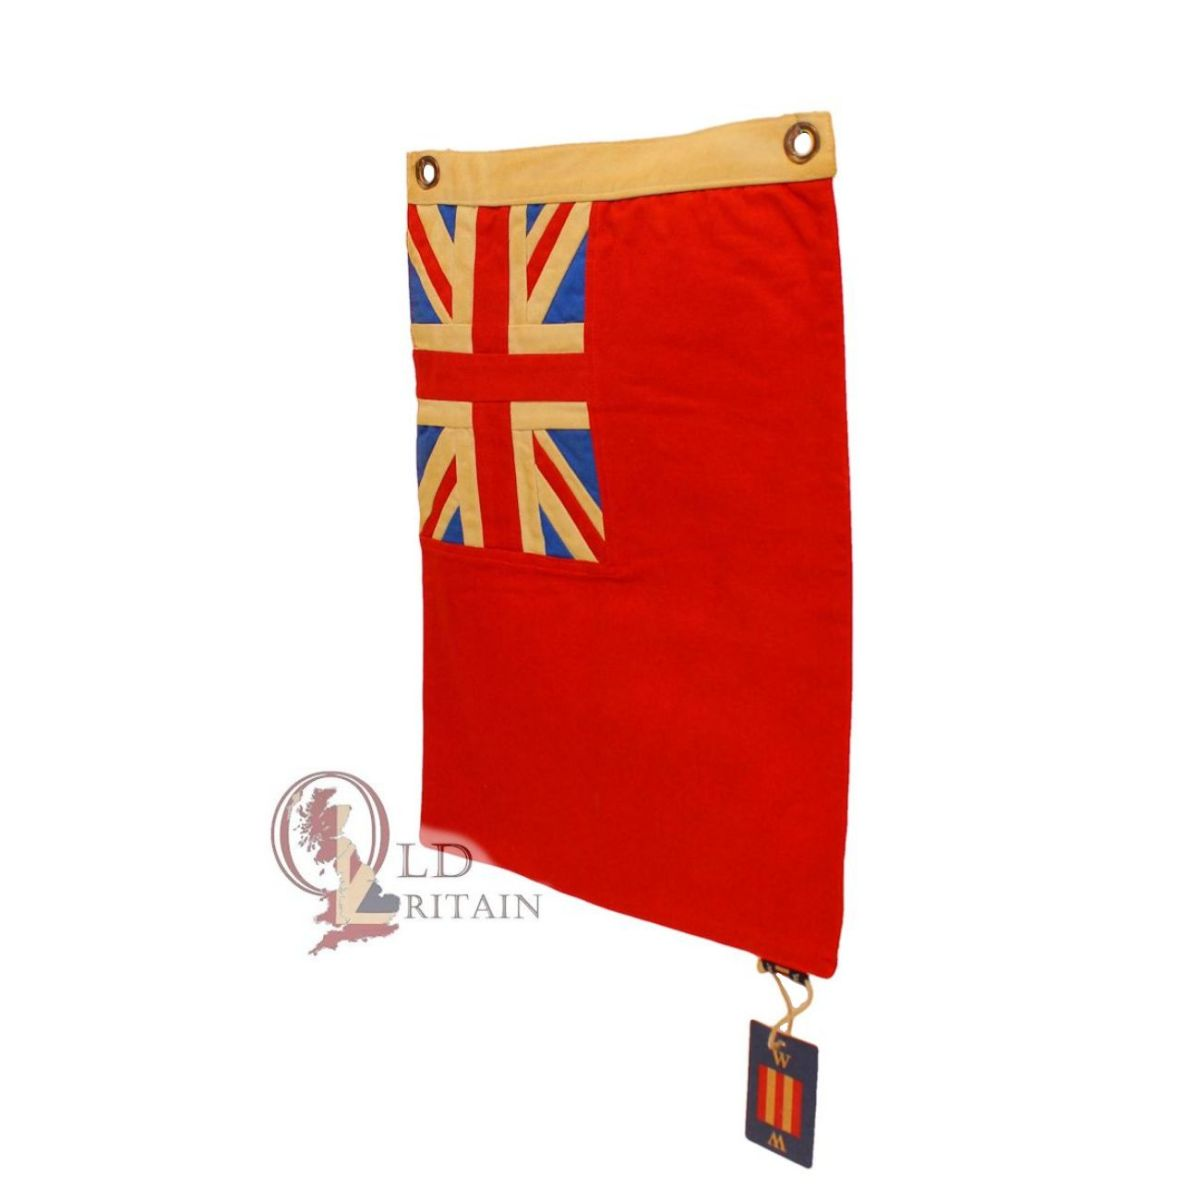 Small Red Ensign Flag 6 sq2